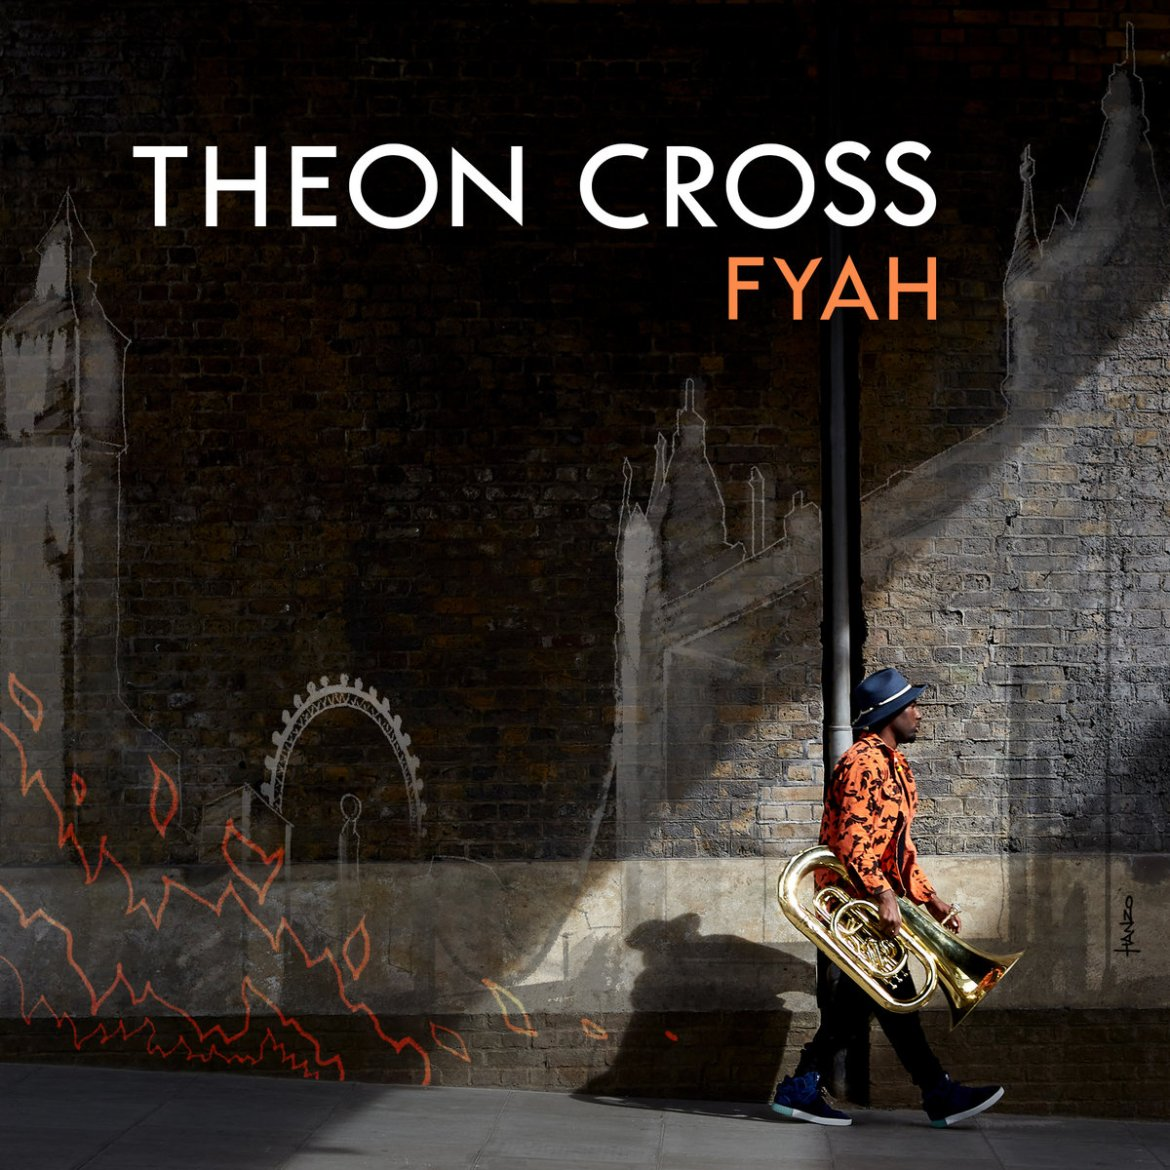 fyah theon cross